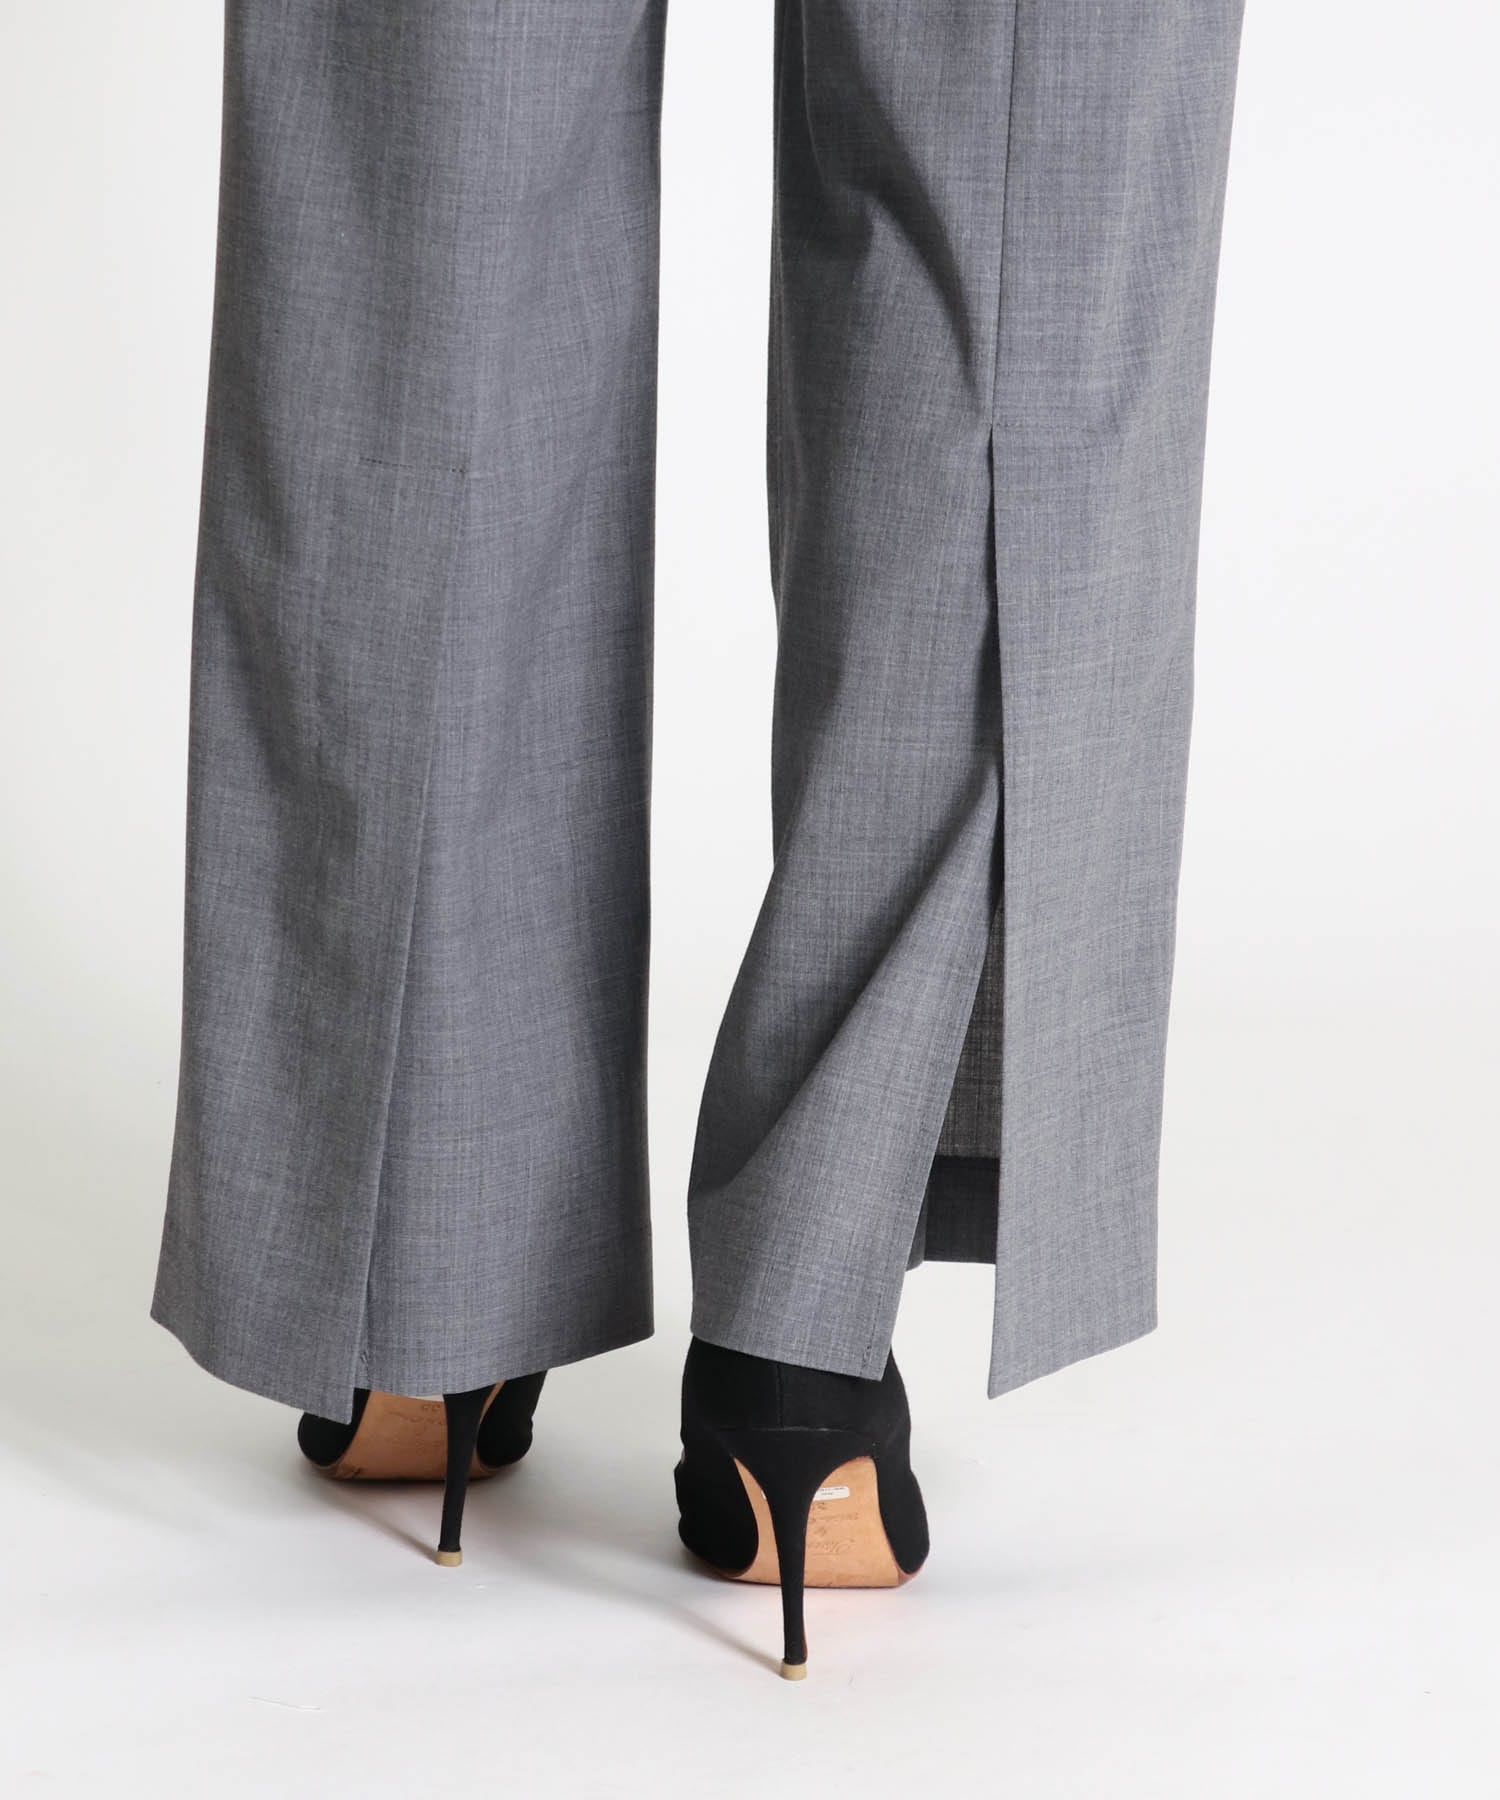 T/W back vents set up pants